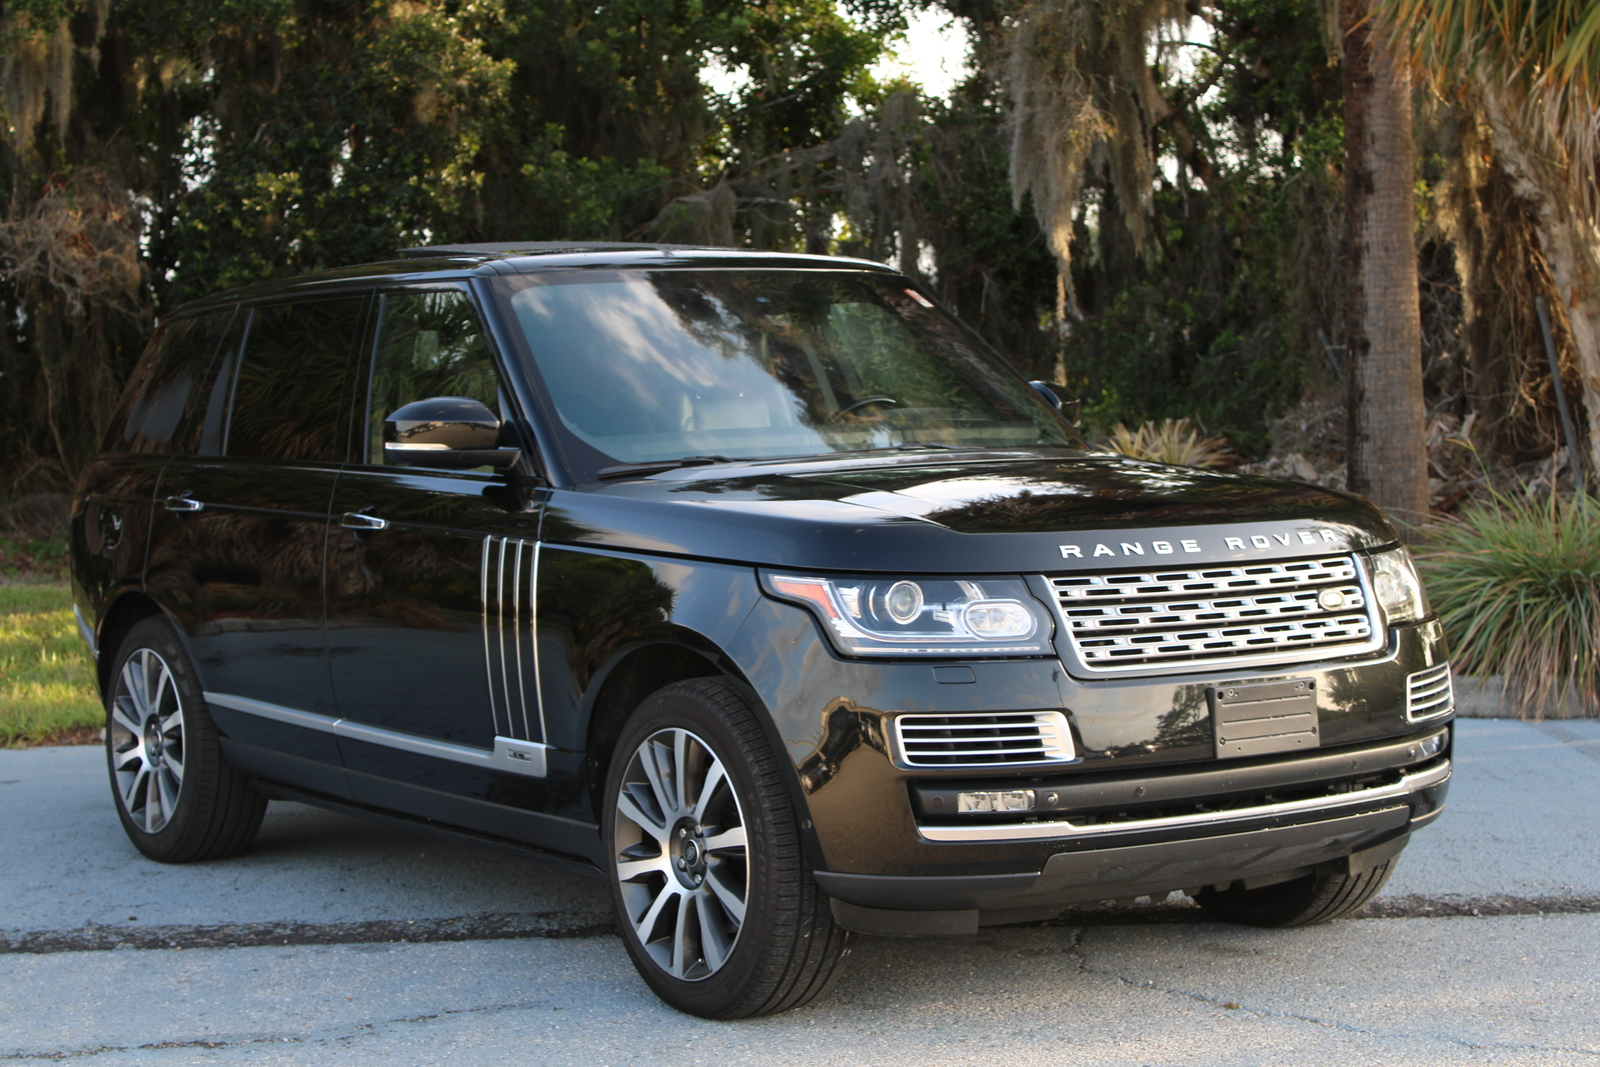 Certified Pre-Owned 2015 Land Rover Range Rover Autobiography Black